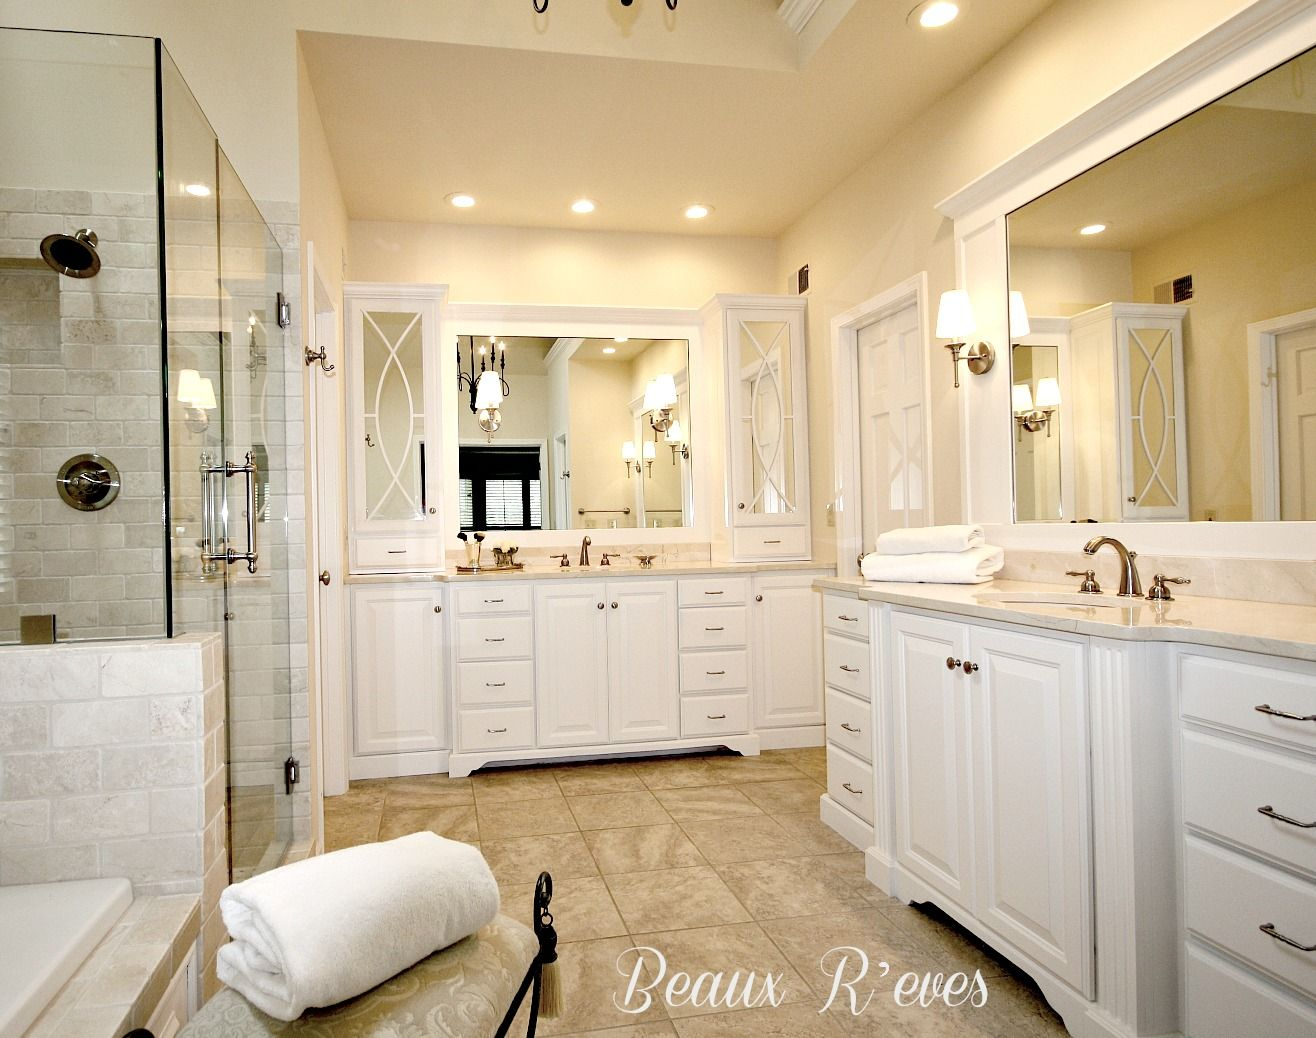 Paint colors walls sherwin williams patience 7555 flat - Best paint color for crema marfil bathroom ...